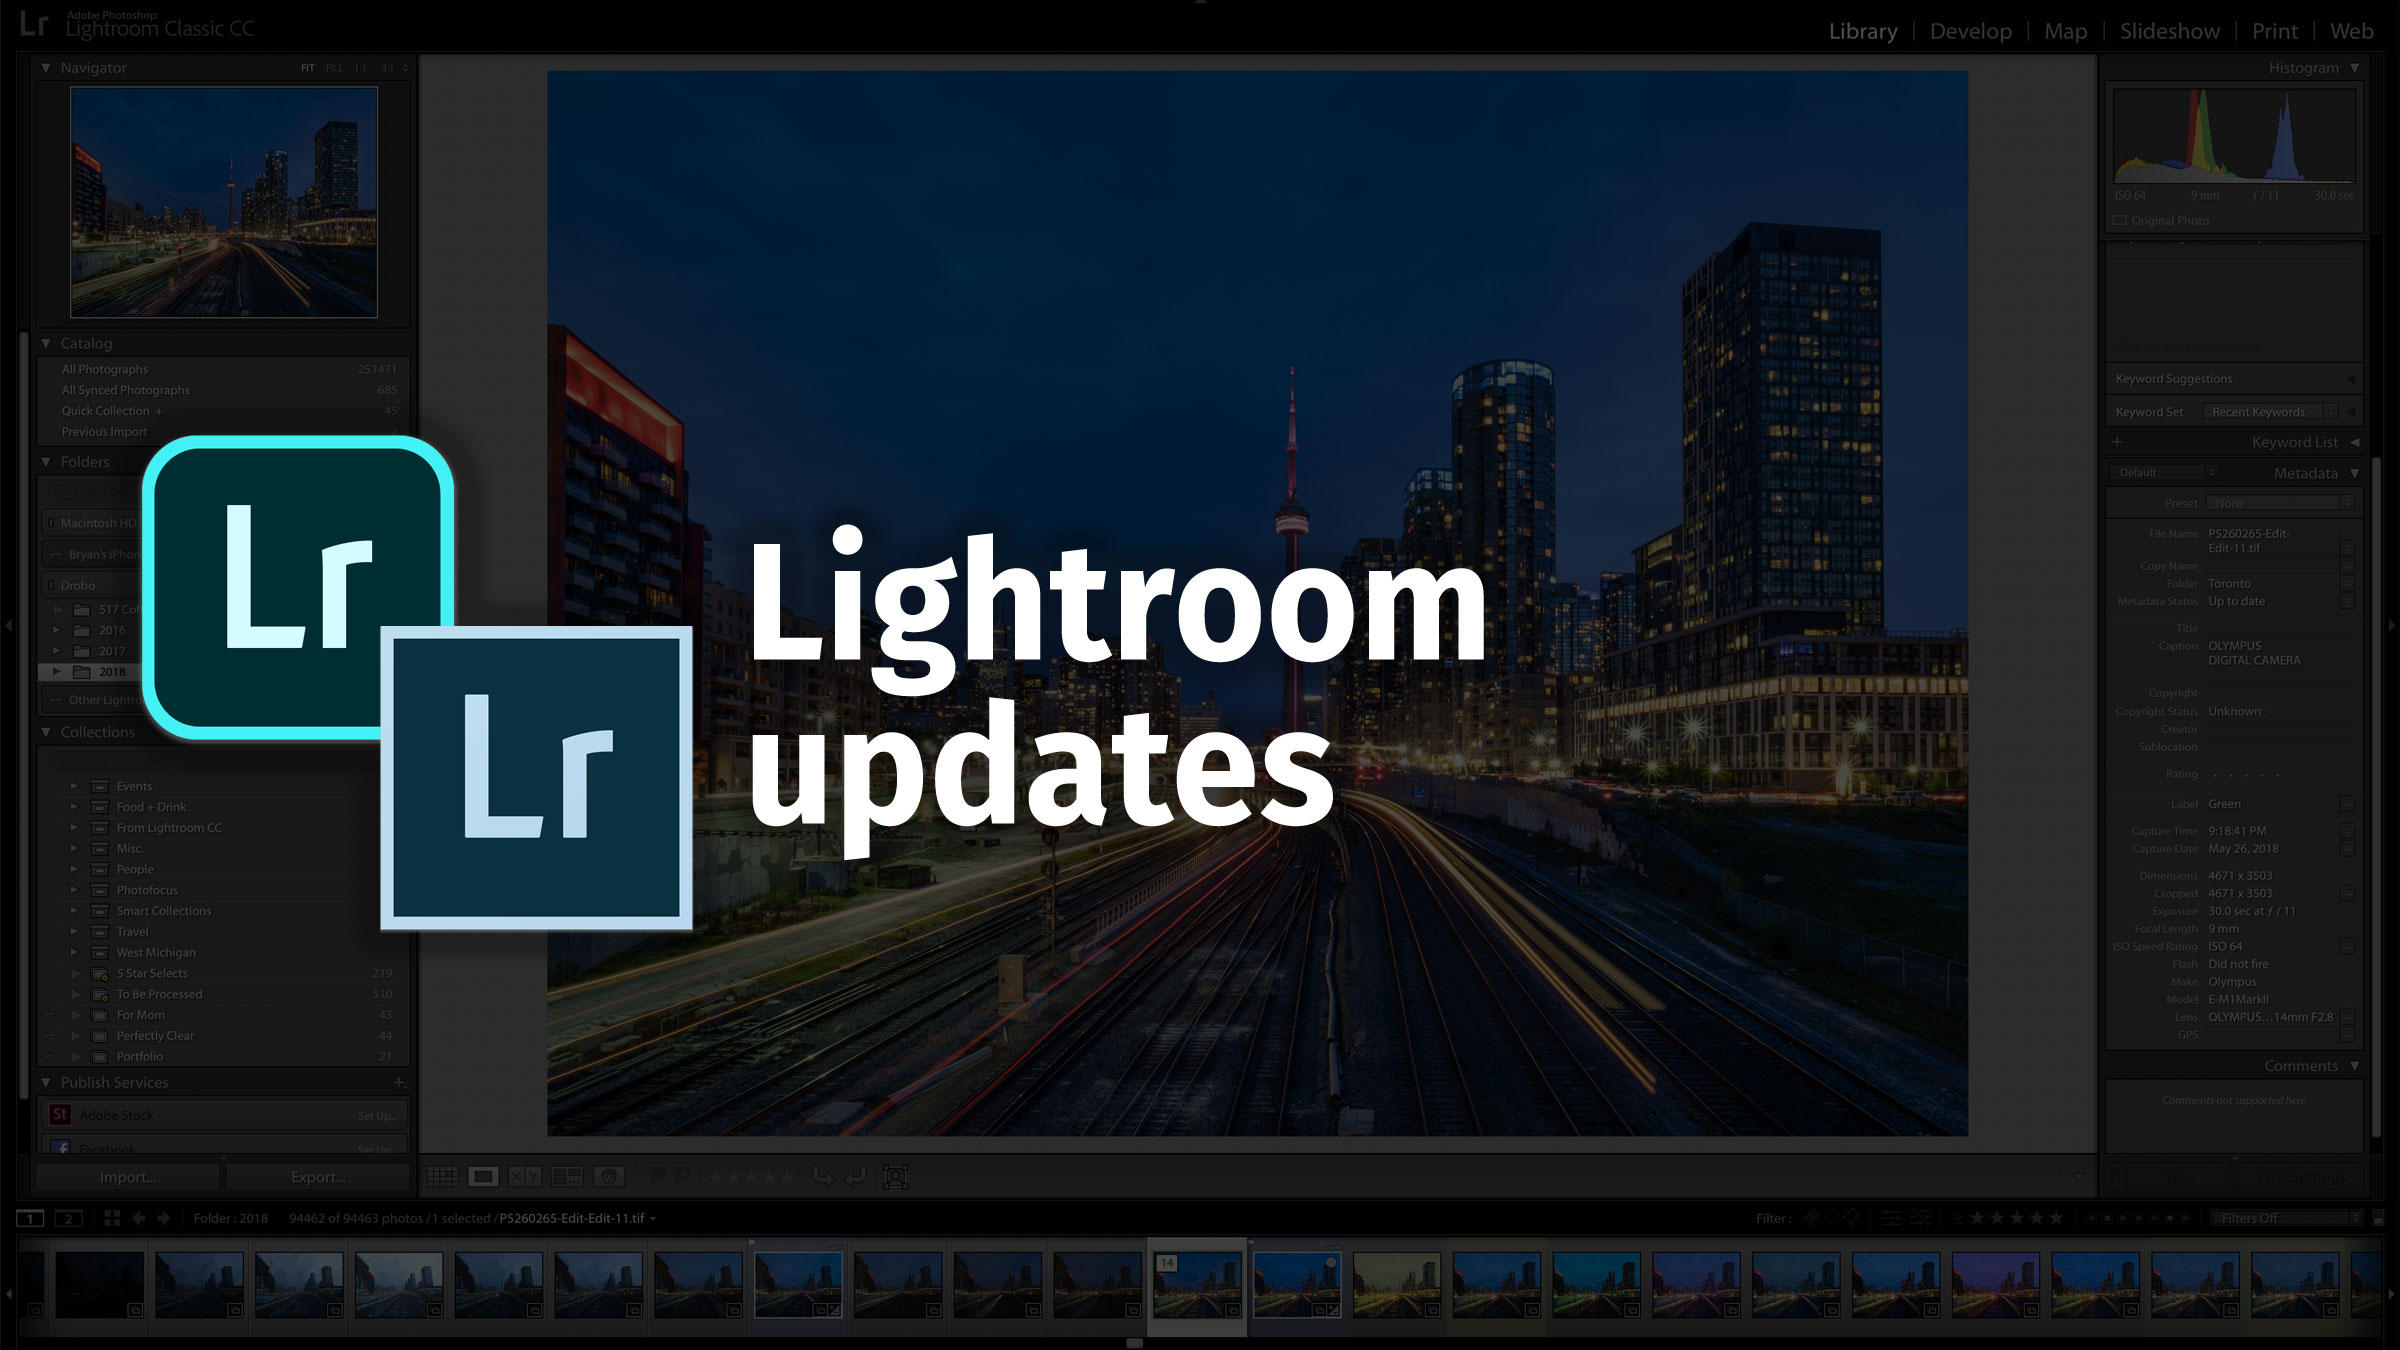 Adobe adds new Texture slider, contextual help and tutorials to Lightroom ecosystem